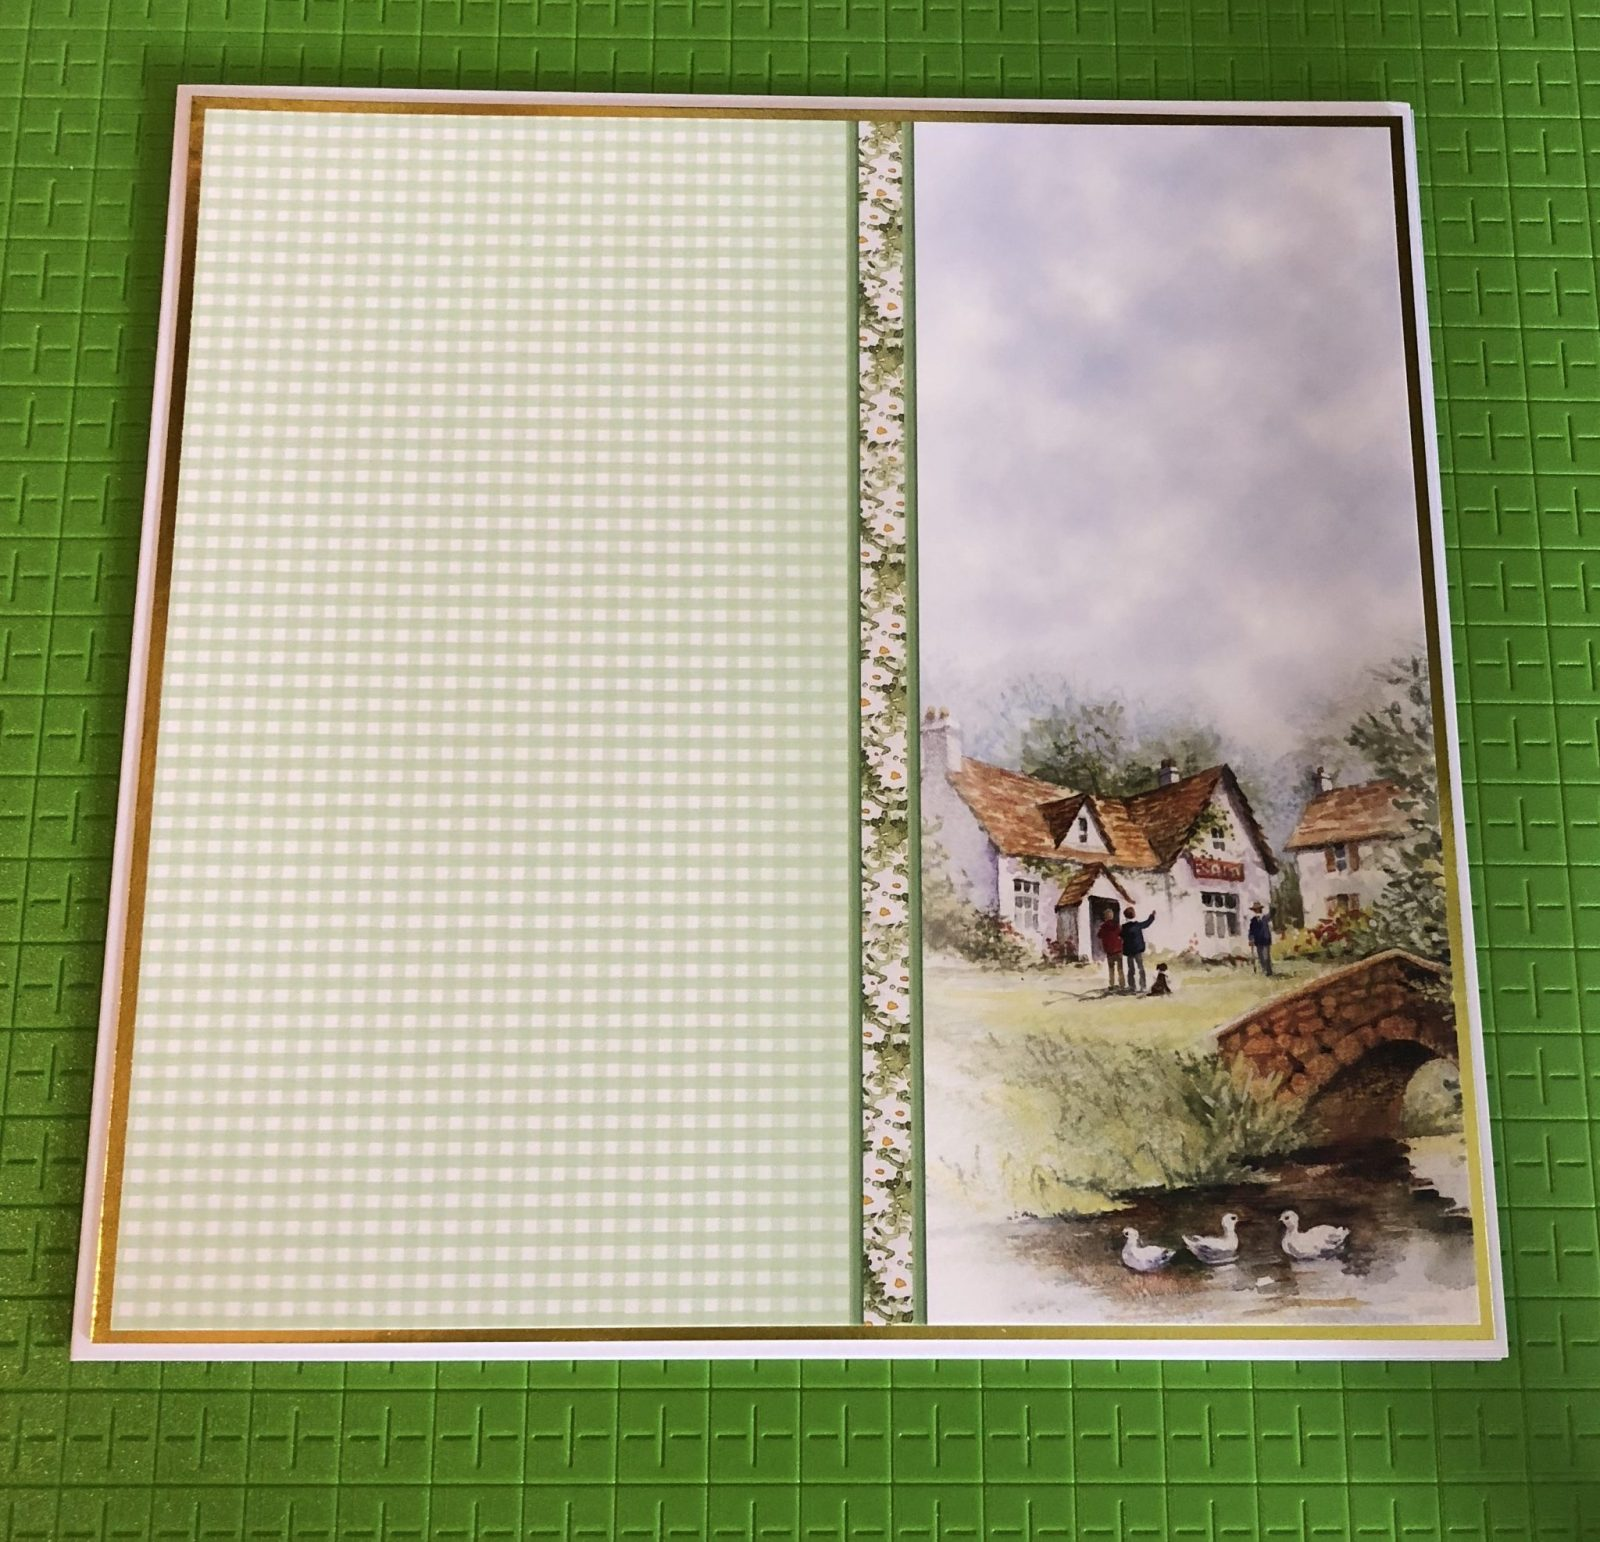 Living Creatively with Fibro | Card Base Layer with the matching cardstock featuring a green gingham check panel and an image of a county cottage with a bridge over a stream and ducks floating by